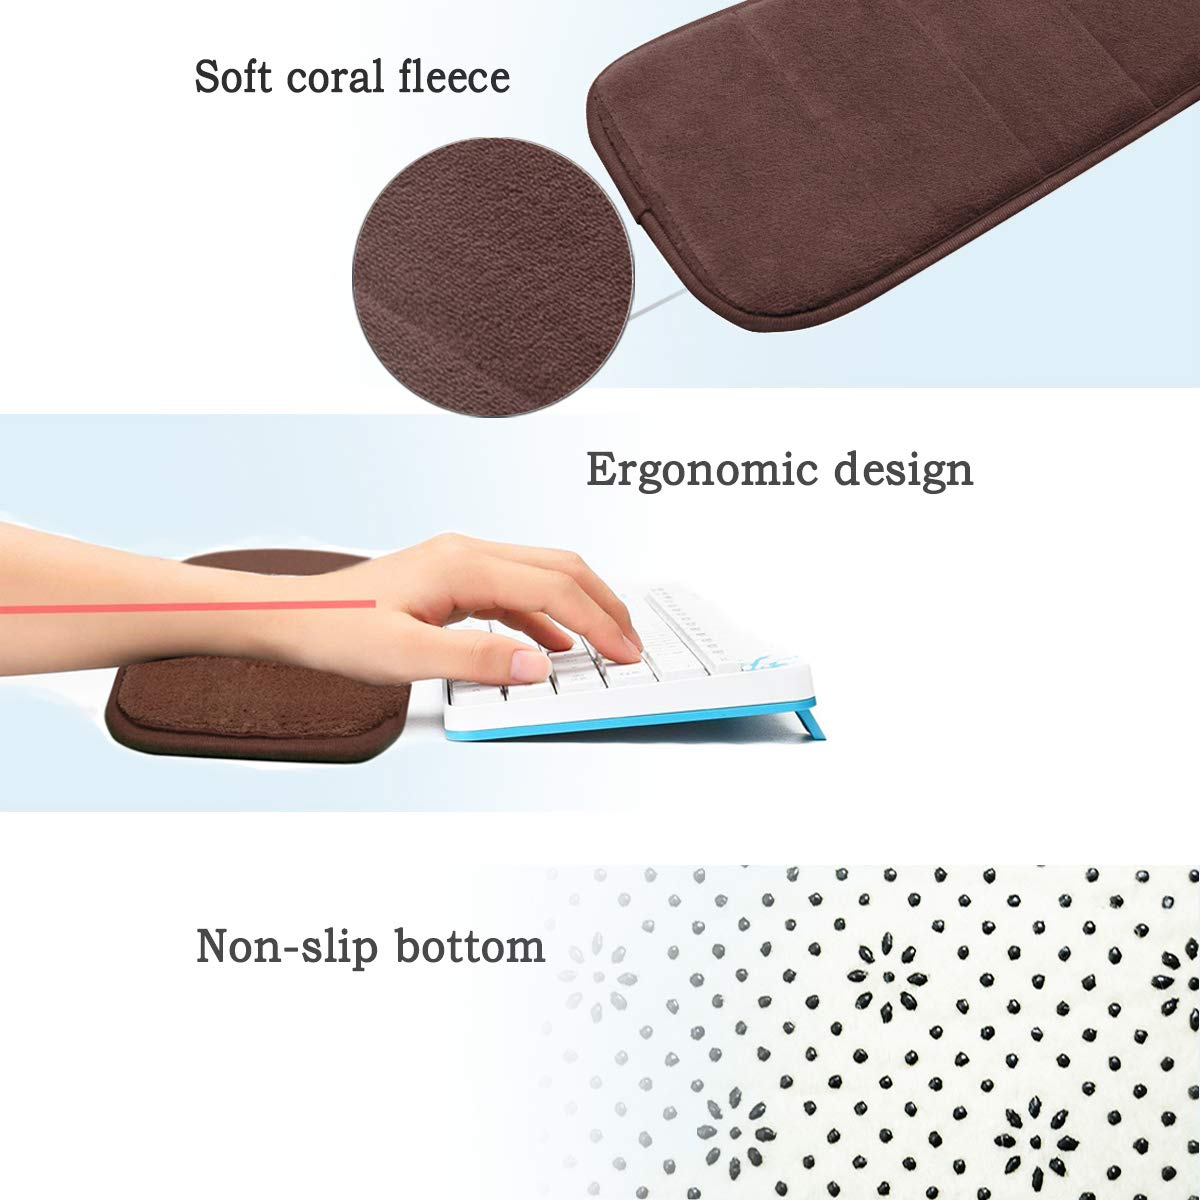 Keyboard Wrist Elbow Support Mat for Office Desktop Working Gaming 7.9 x 31.5 inch Purple Soft, Long-Sized Less Elbow Pain 2Pcs Computer Wrist Elbow Pad Creatiee Upgraded Wrist Rest Arm Pad